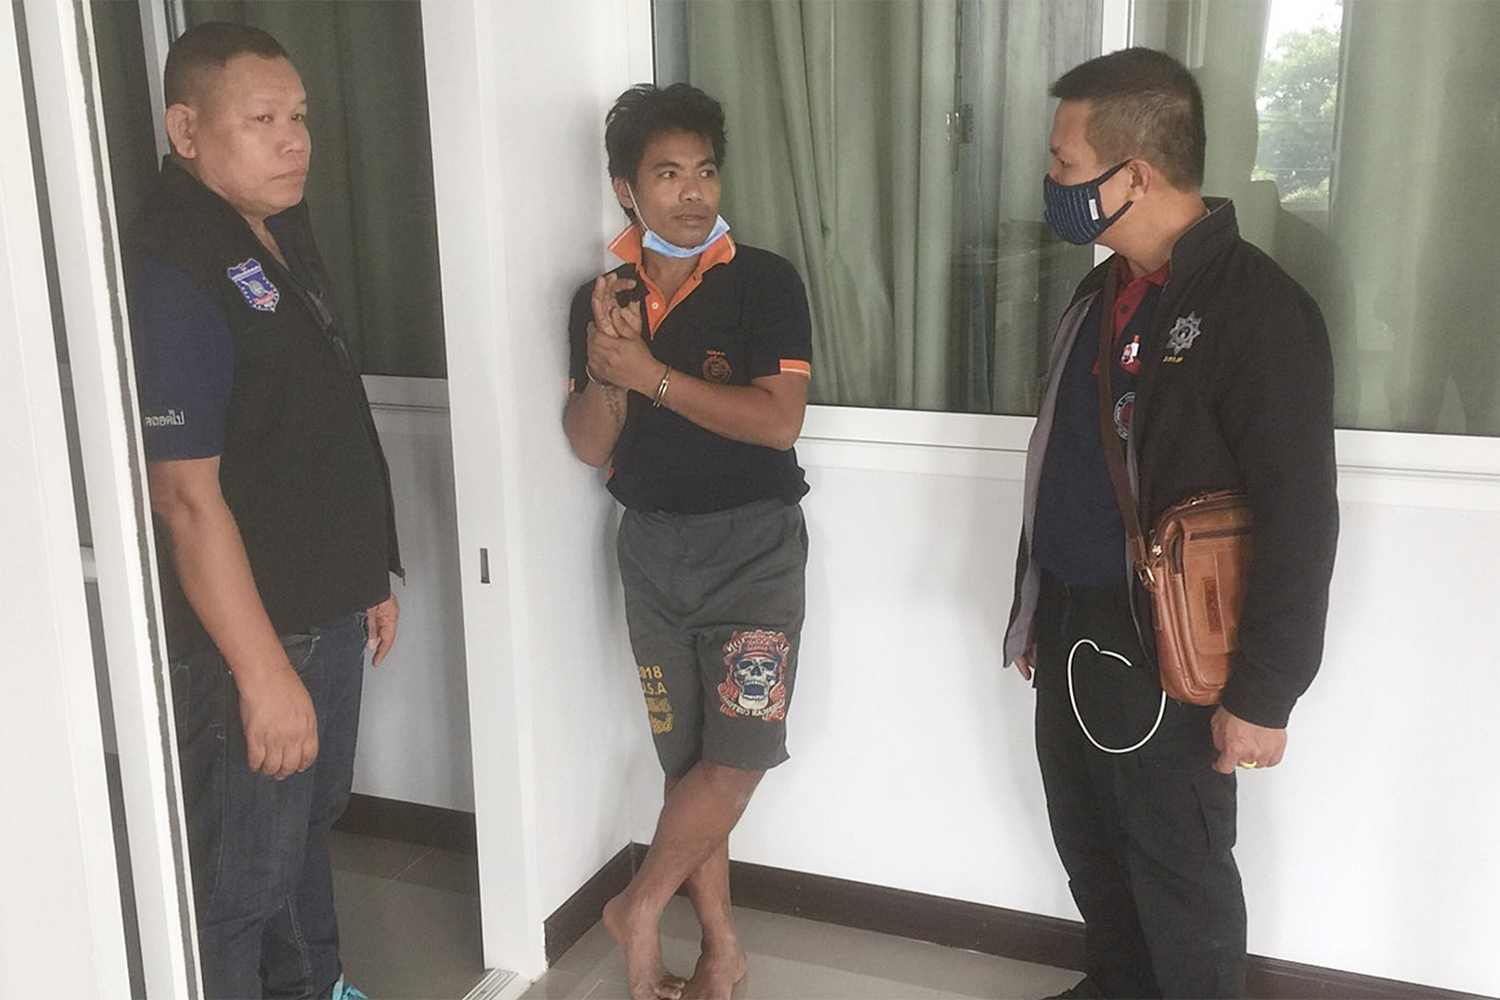 Panupong Khotchomphu is taken for an interrogation at Kham Ta Khla police station in Kham Ta Khla district of Sakon Nakhon after he and four others escaped from a prison on Friday. (Photo by Pratuan Kachoarnwuthinan)